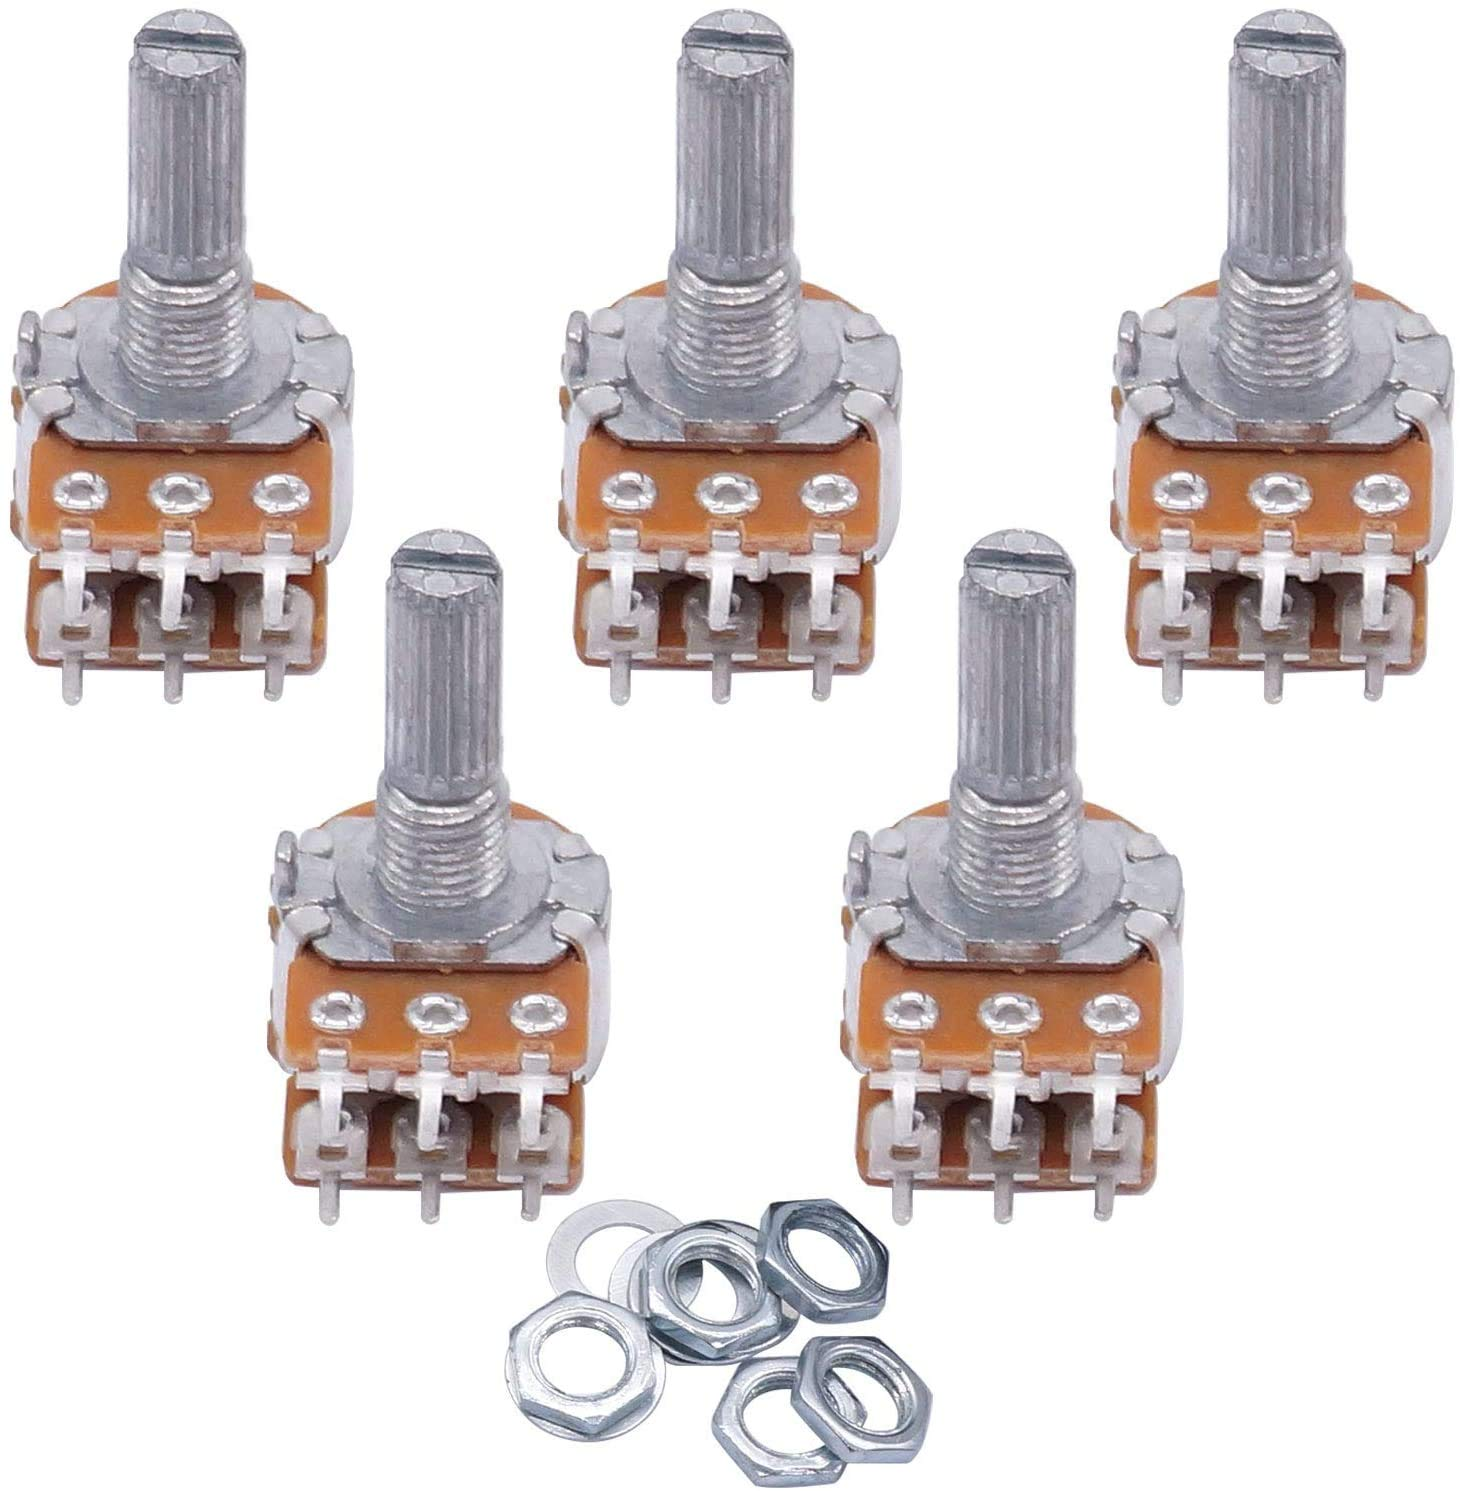 Pins on a potentiometer